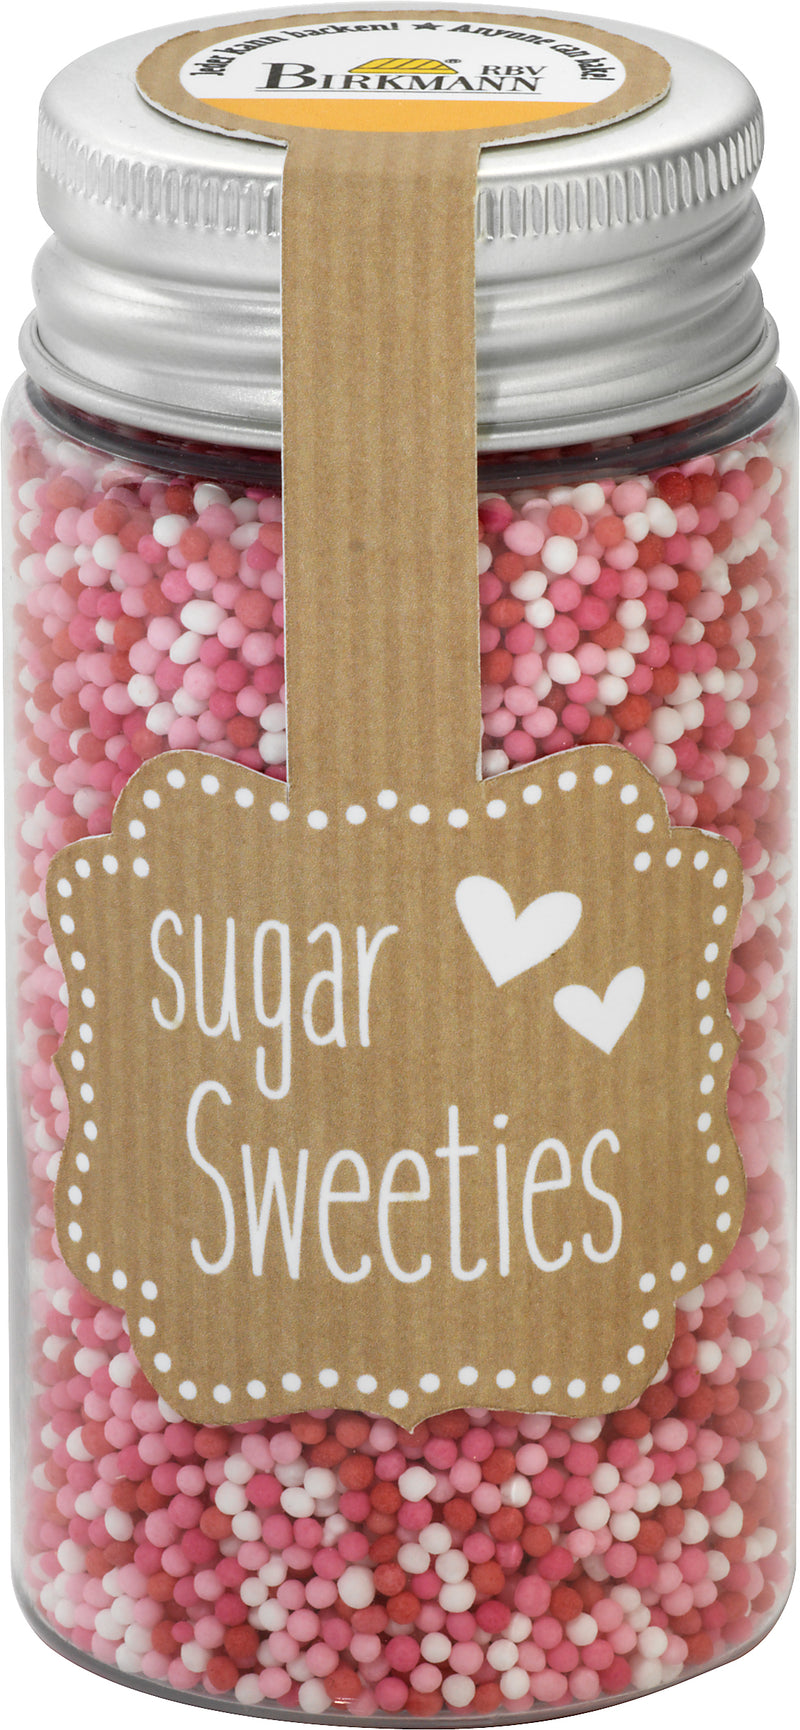 Birkmann Sugar Sprinkles - 75g Love